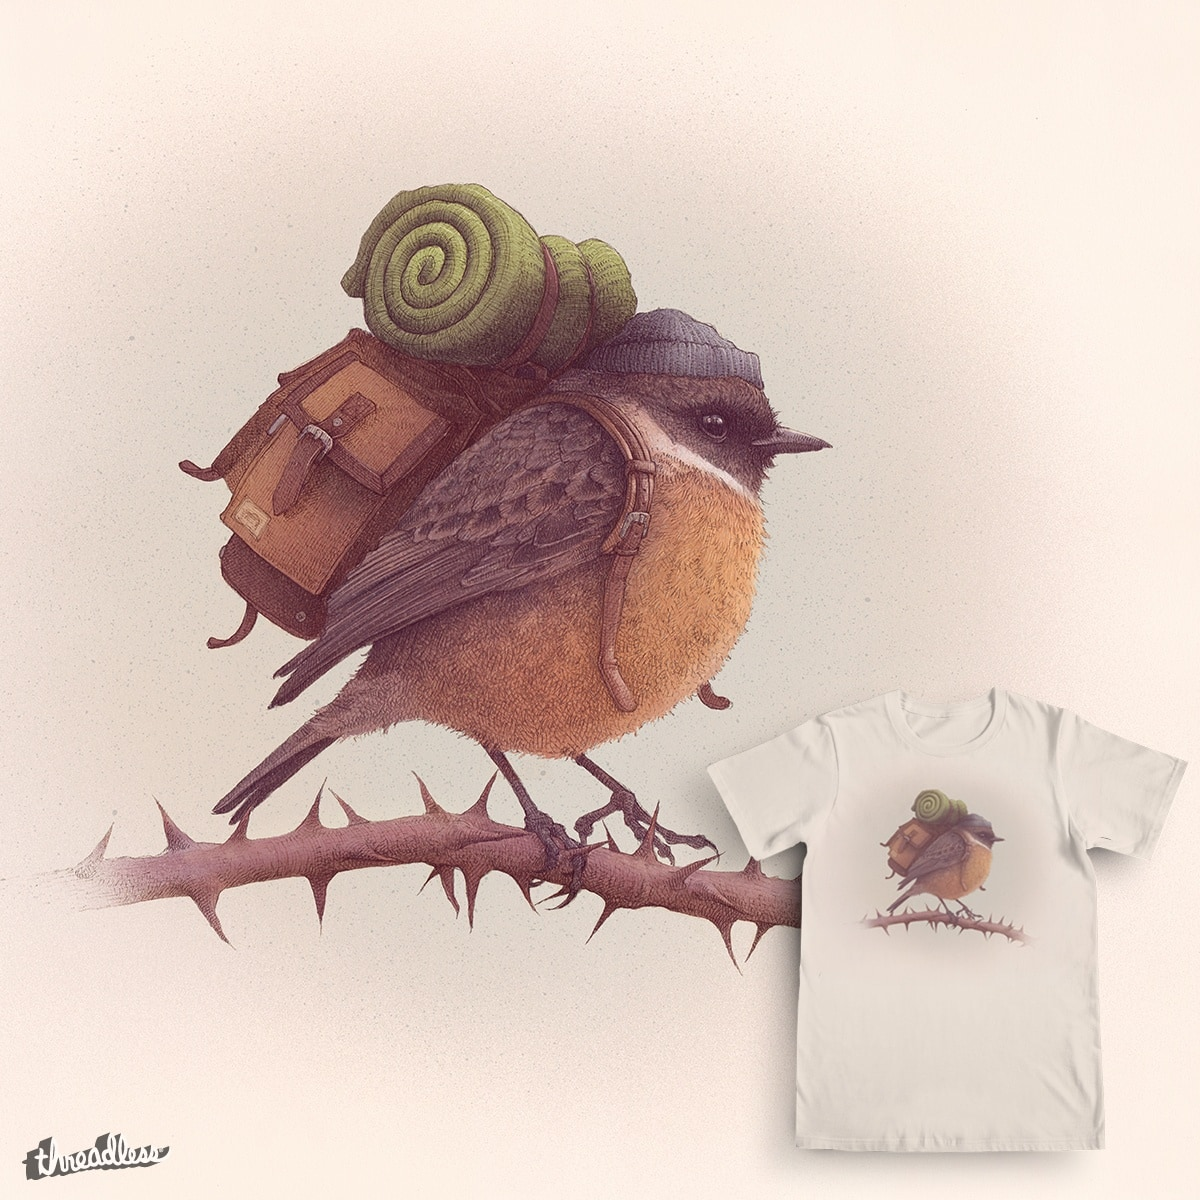 Wanderlust by Mike Marshall on Threadless